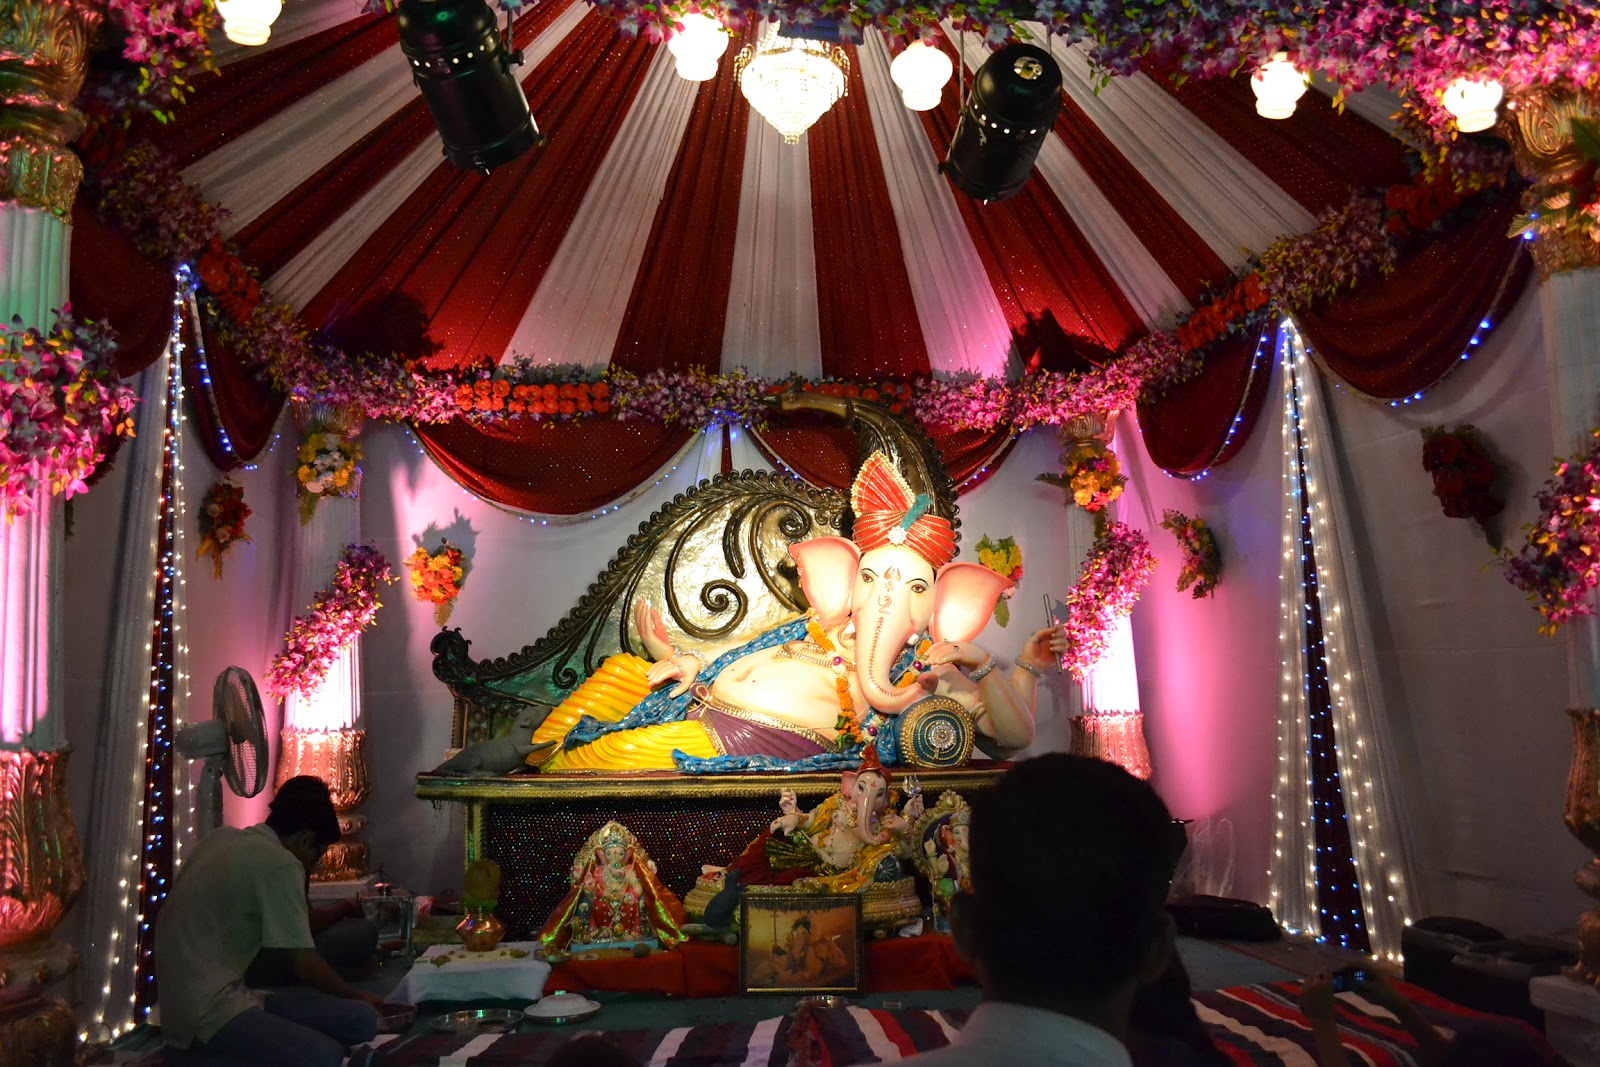 Hd Wallpapers Hindu God Free Images Photo Download Ganesh Chaturthi Jolly Group L P